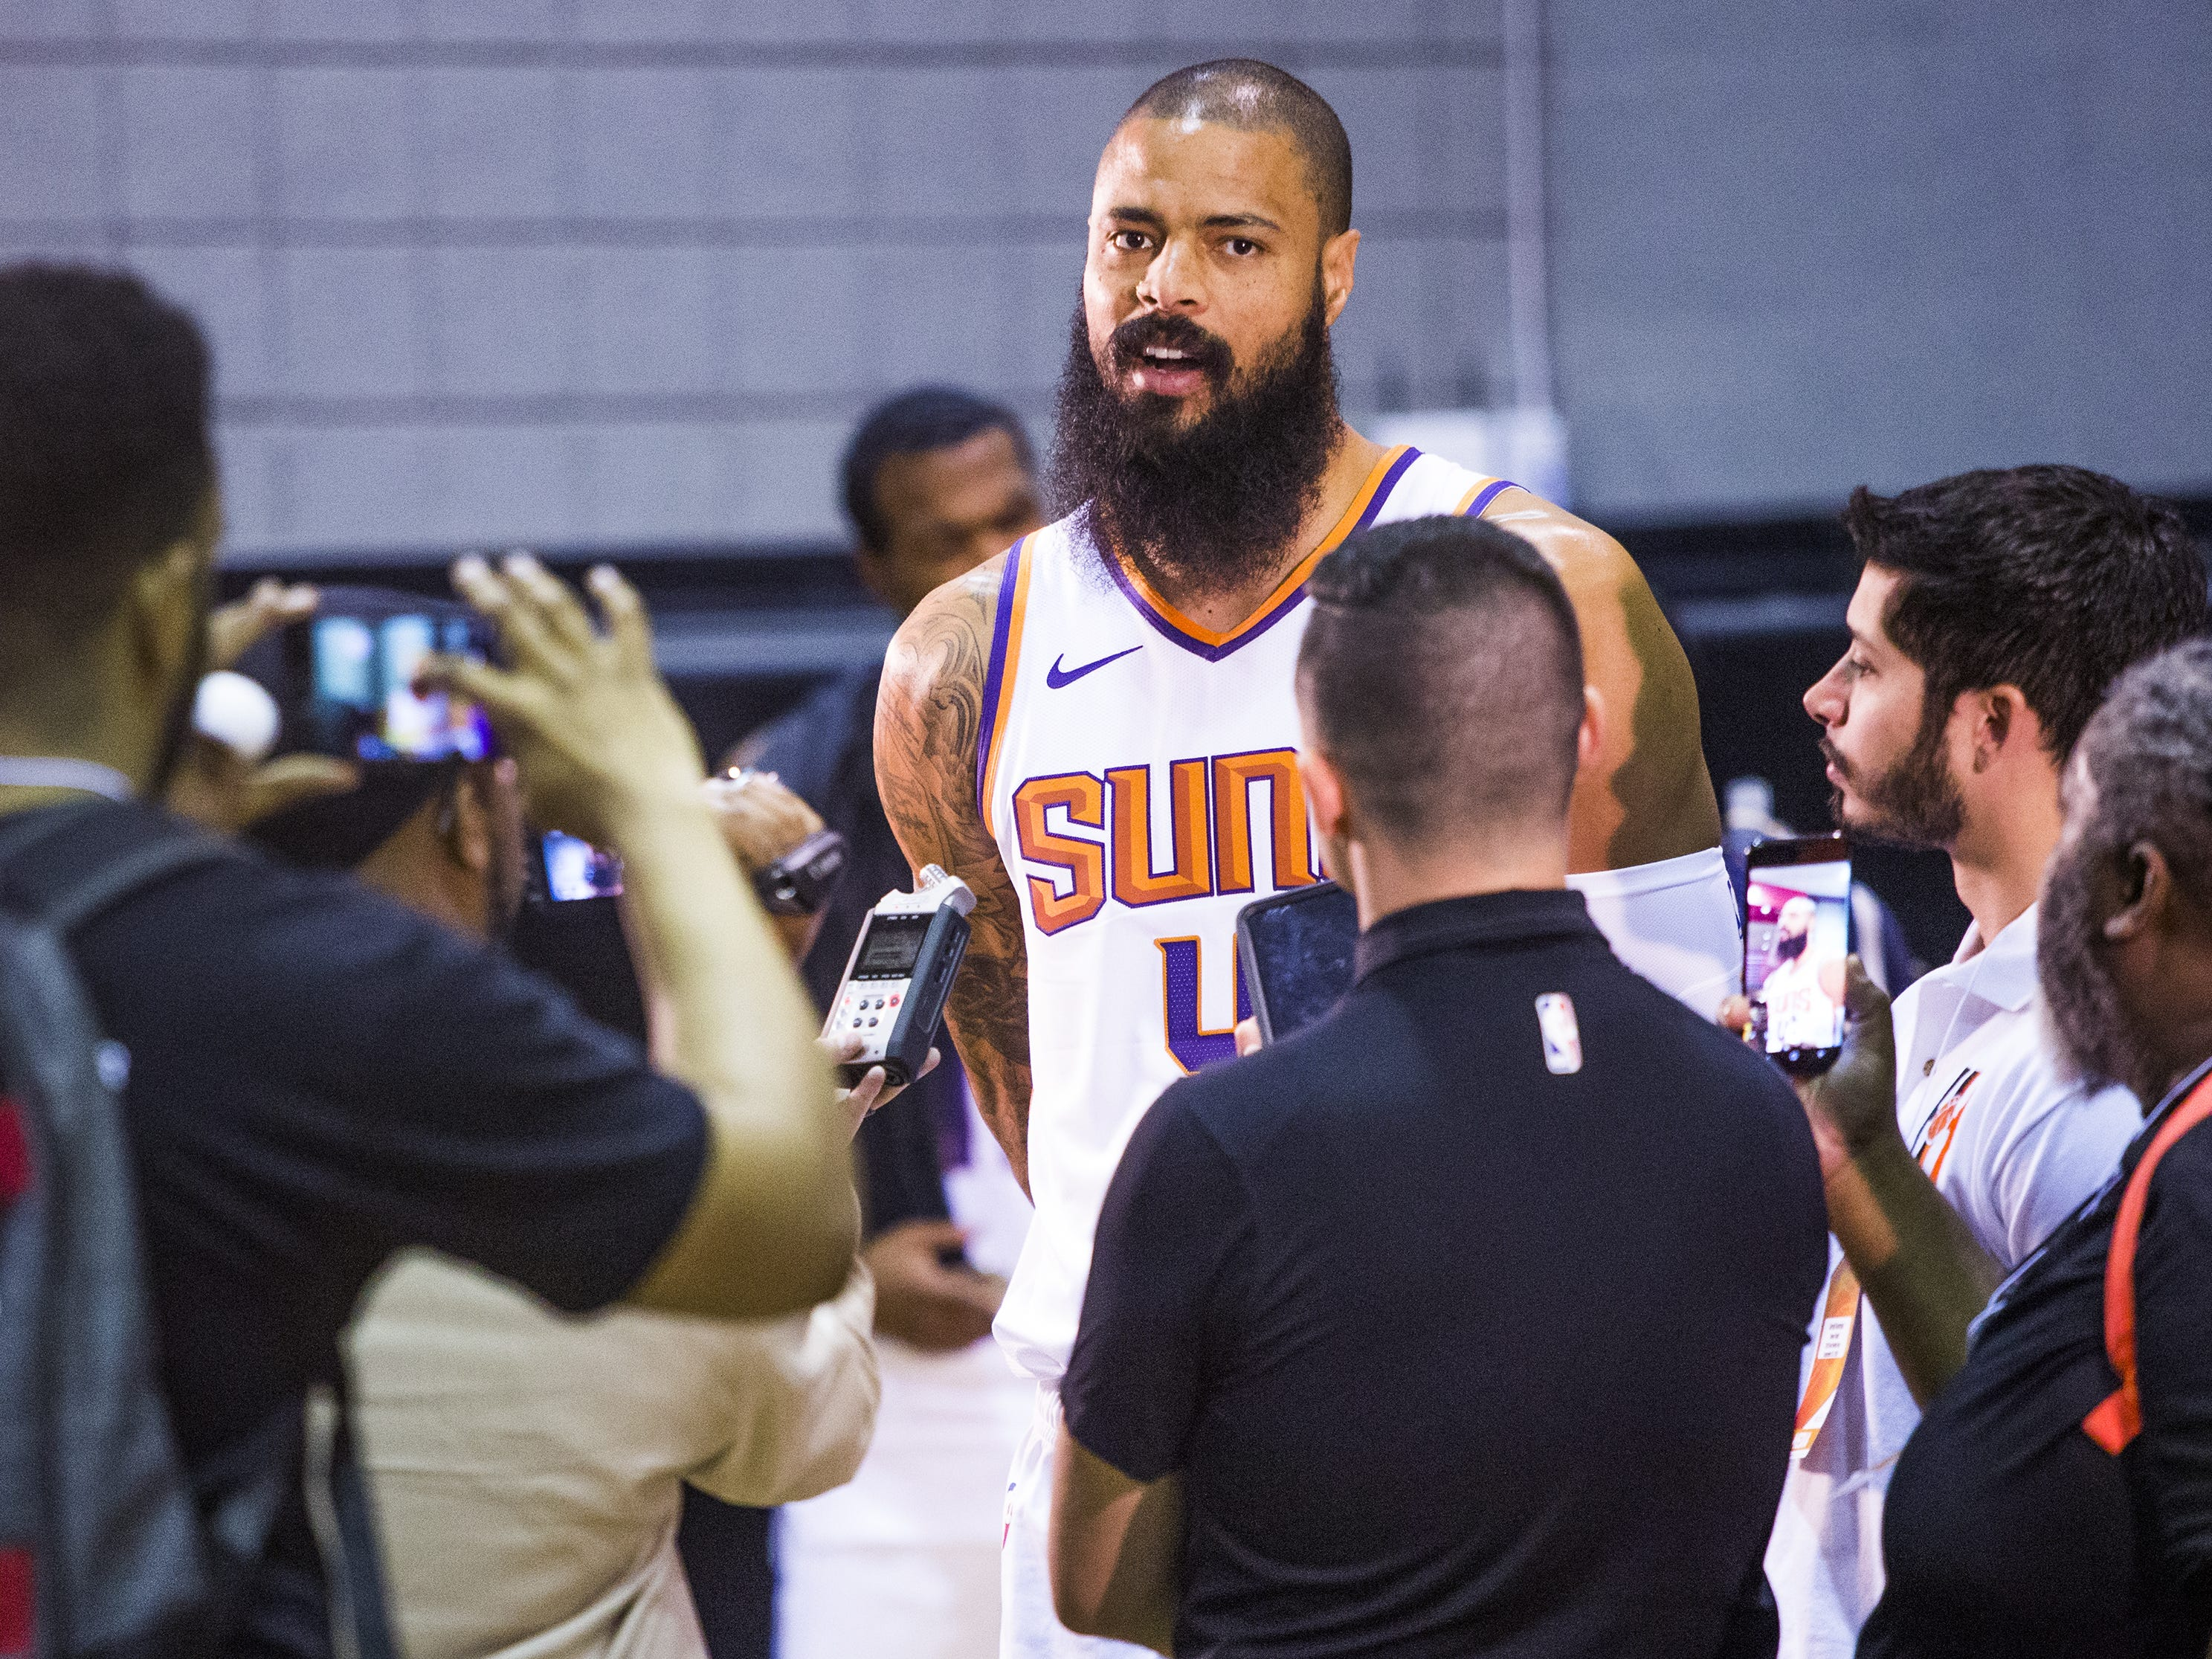 Tyson Chandler, center for the Phoenix Suns,  speaks to members of the media at Phoenix Suns Media Day at Talking Stick Resort Arena in Phoenix, Monday, September 24, 2018.